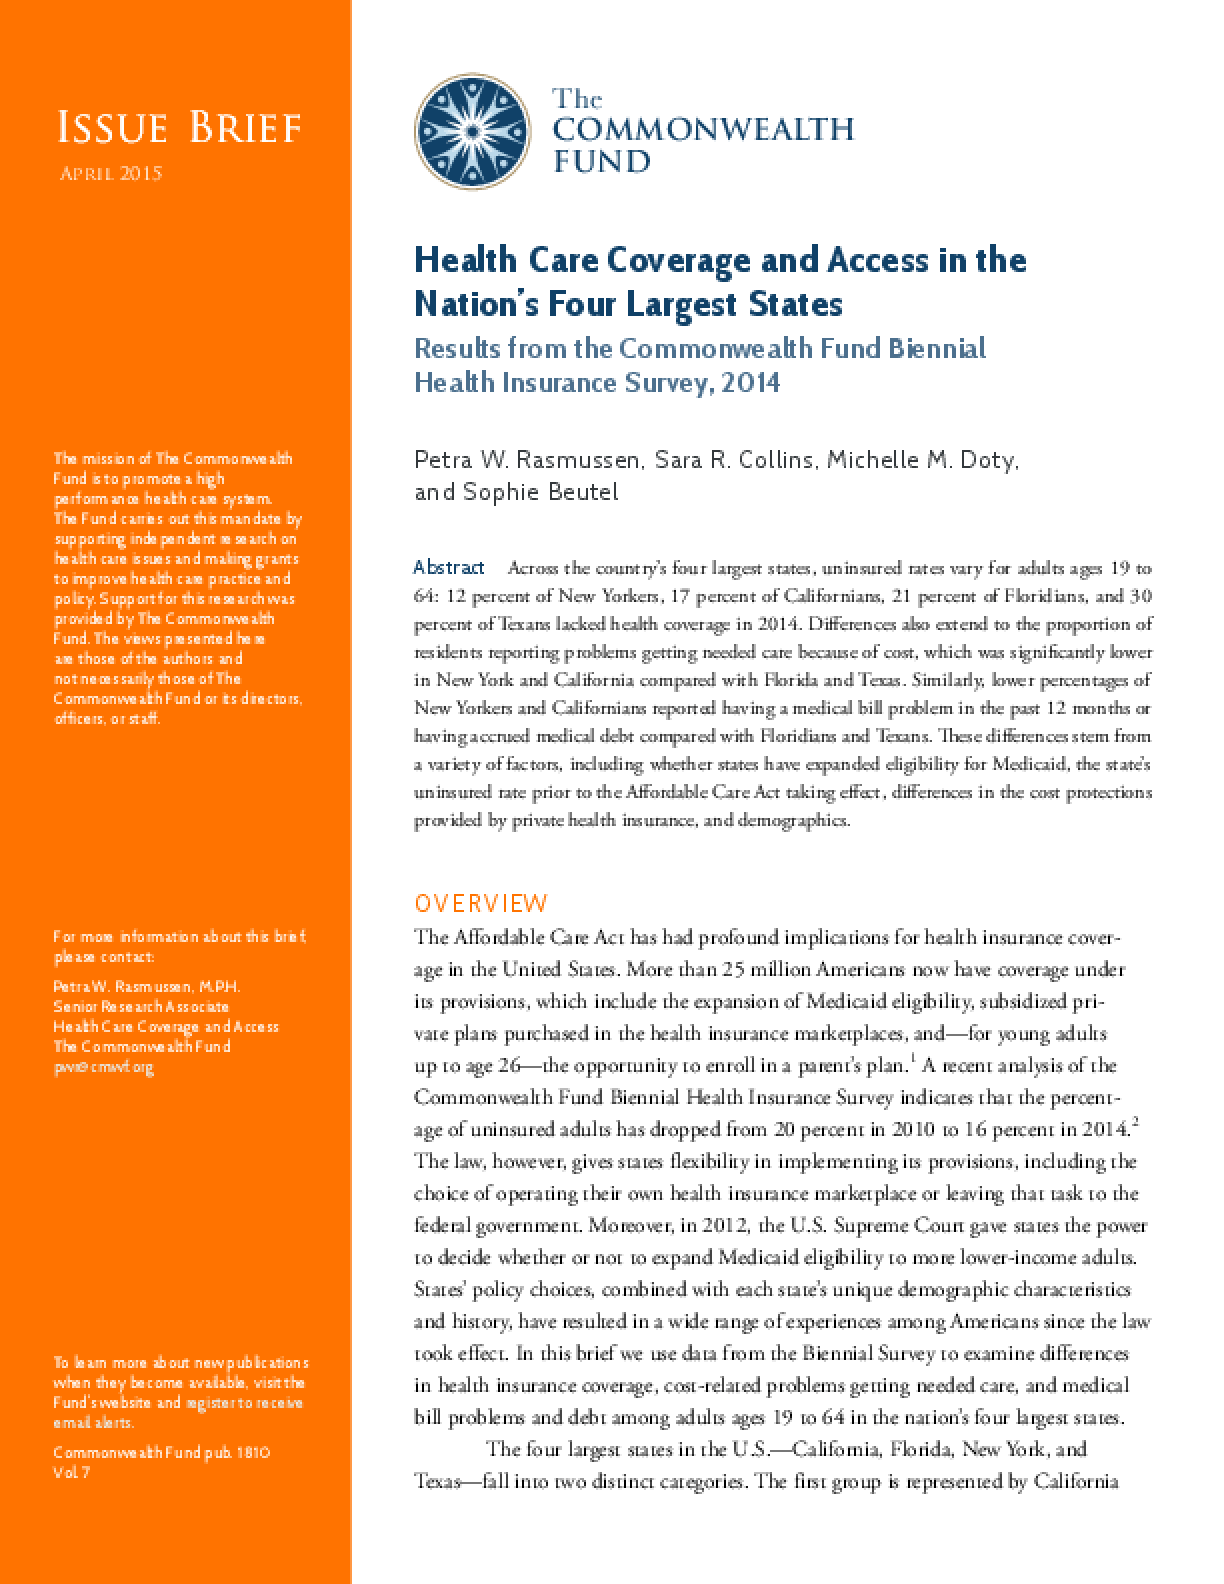 Health Care Coverage and Access in the Nation's Four Largest States: Results from the Commonwealth Fund Biennial Health Insurance Survey, 2014